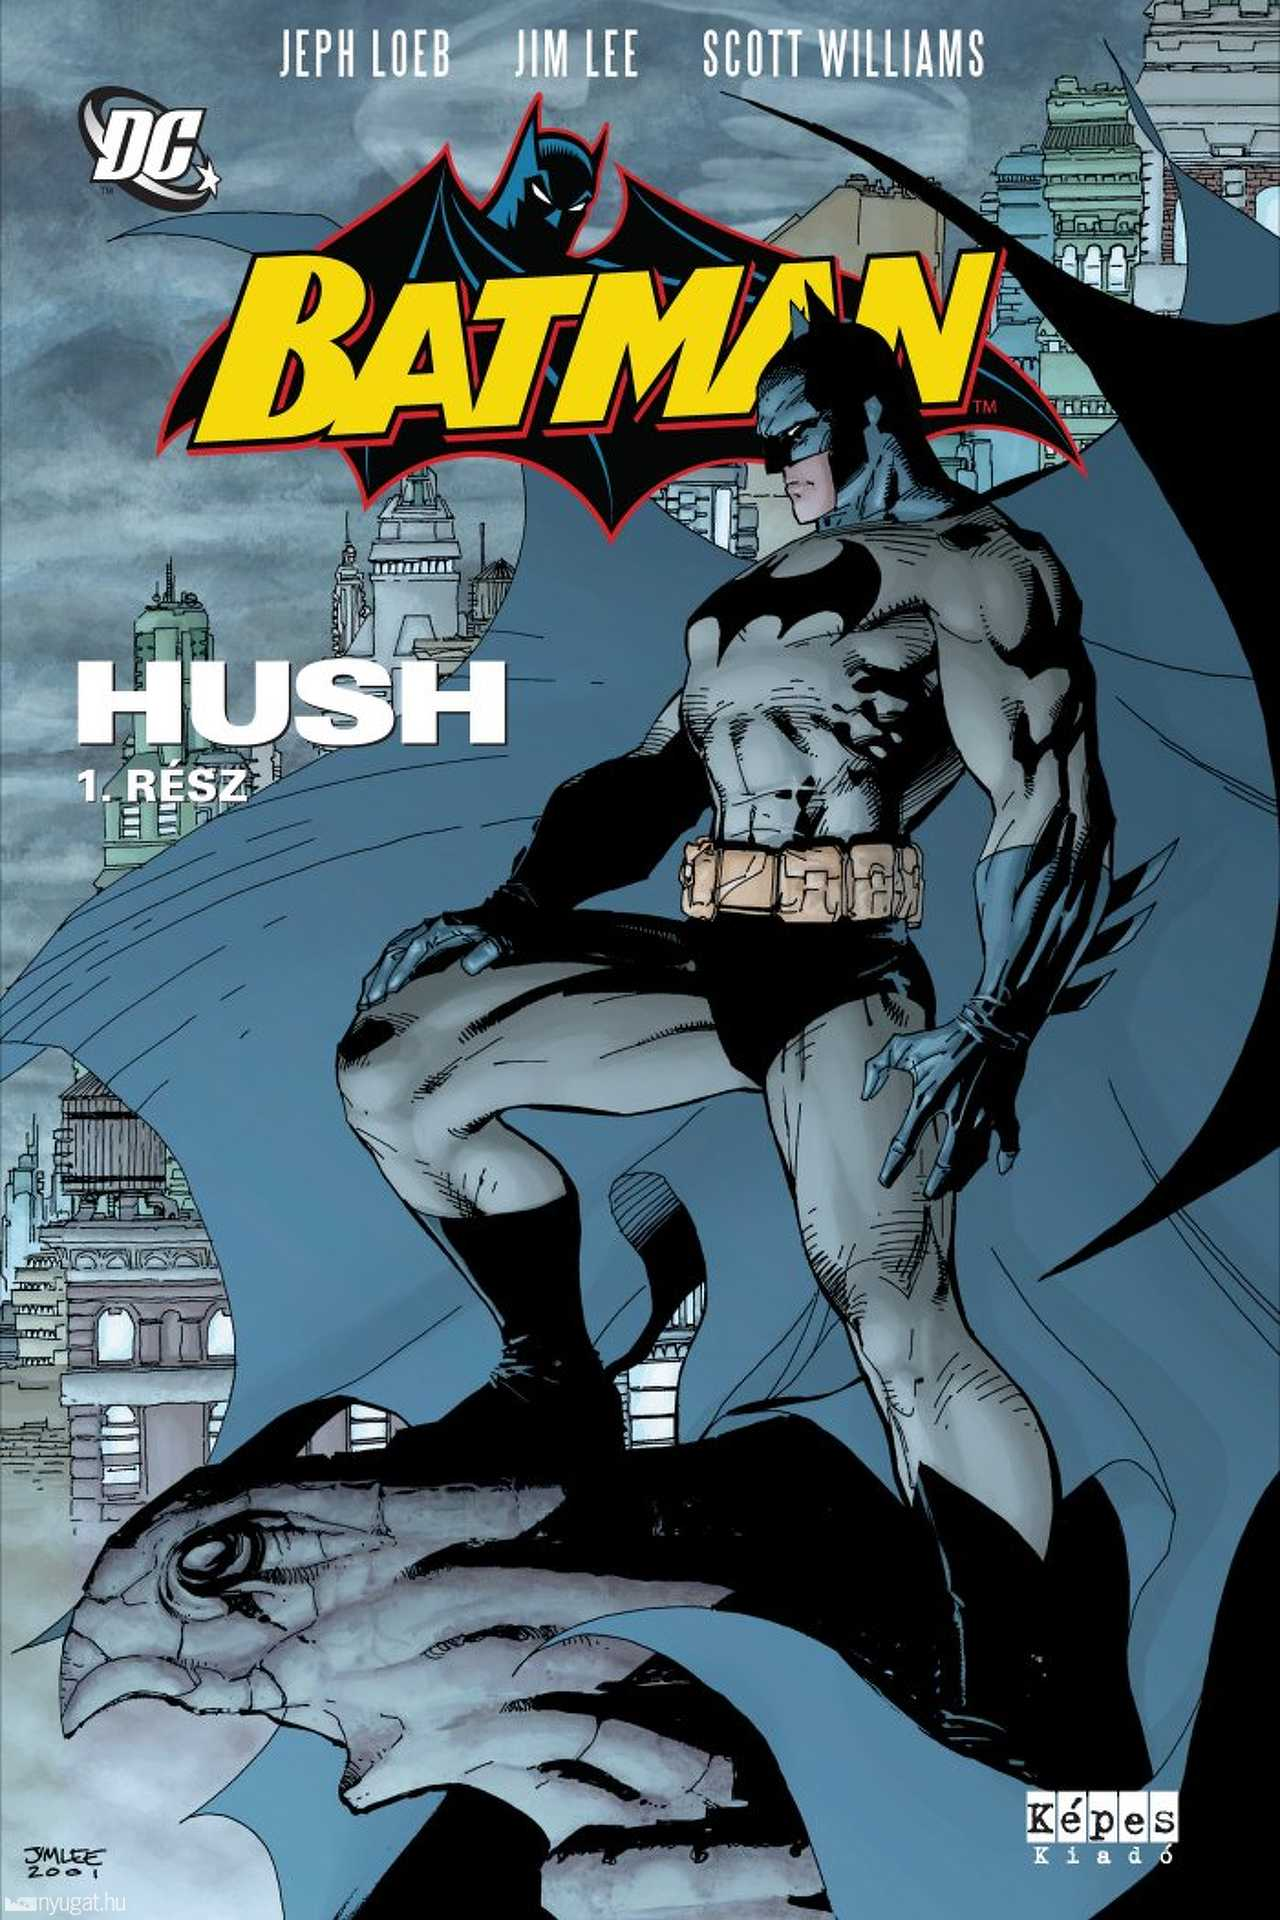 Batman - Hush 1. rész